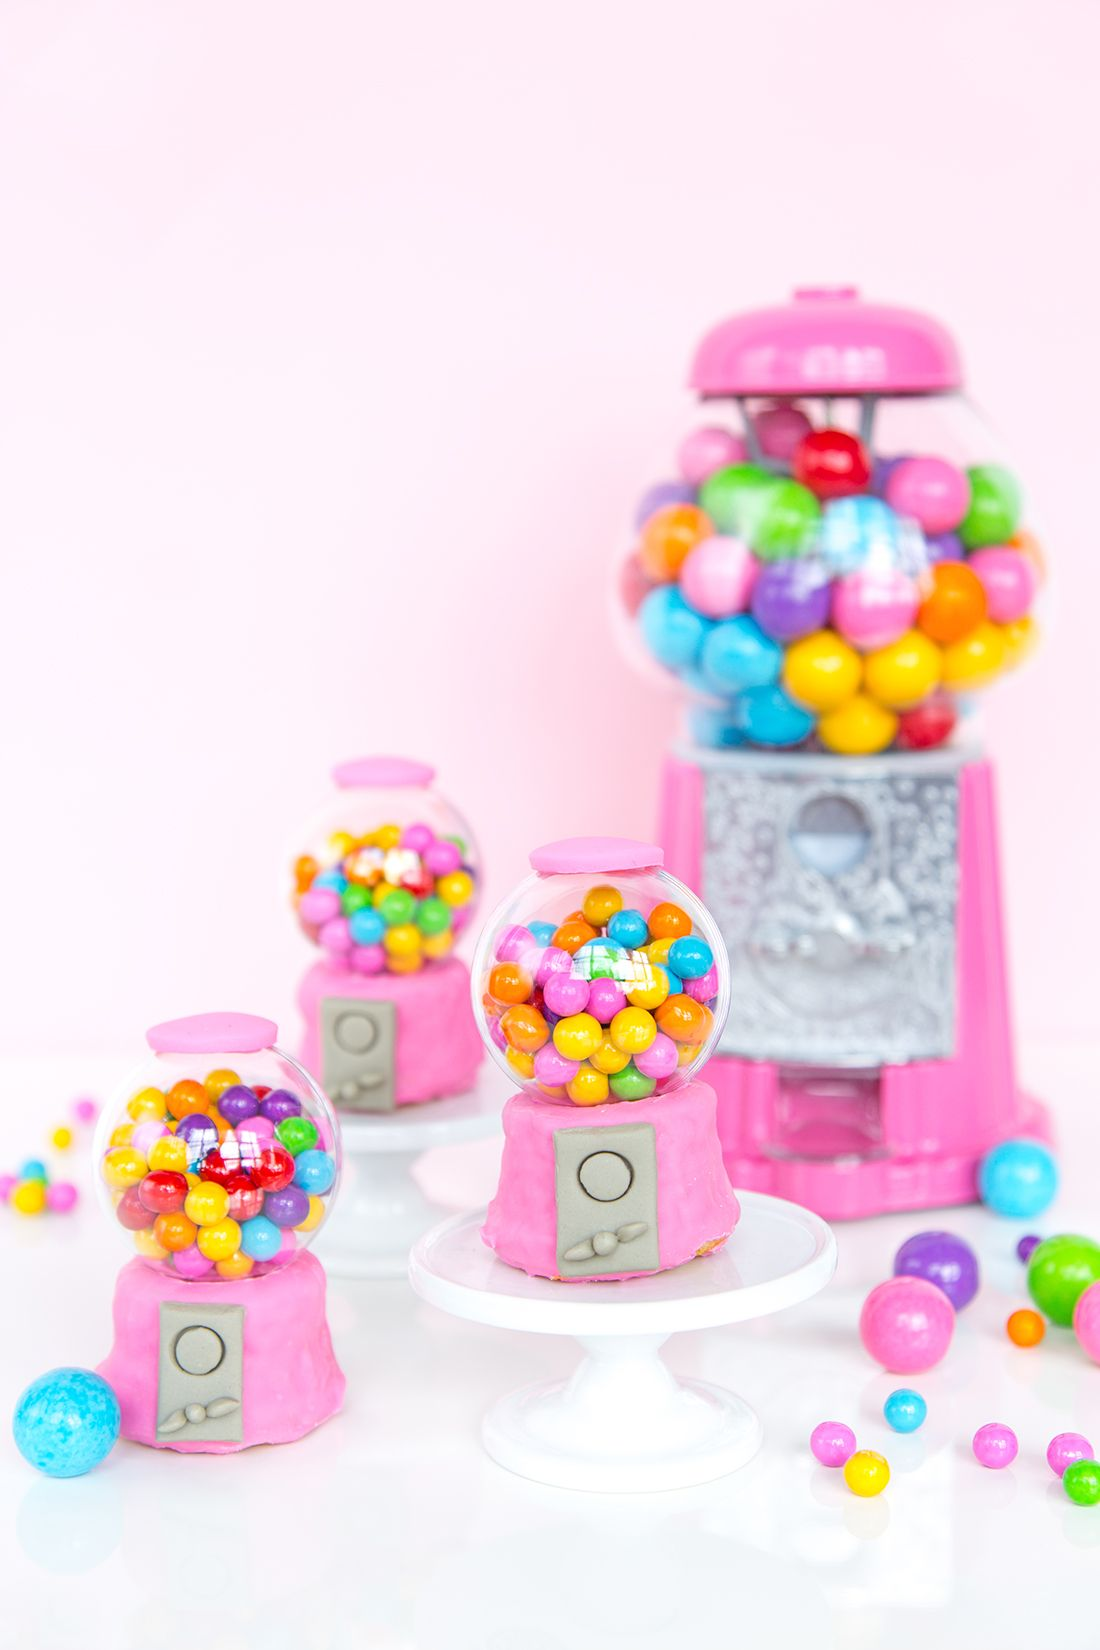 Baby with toys images  Gumball Machine Cupcakes  awwsam   cupcakes  muffins